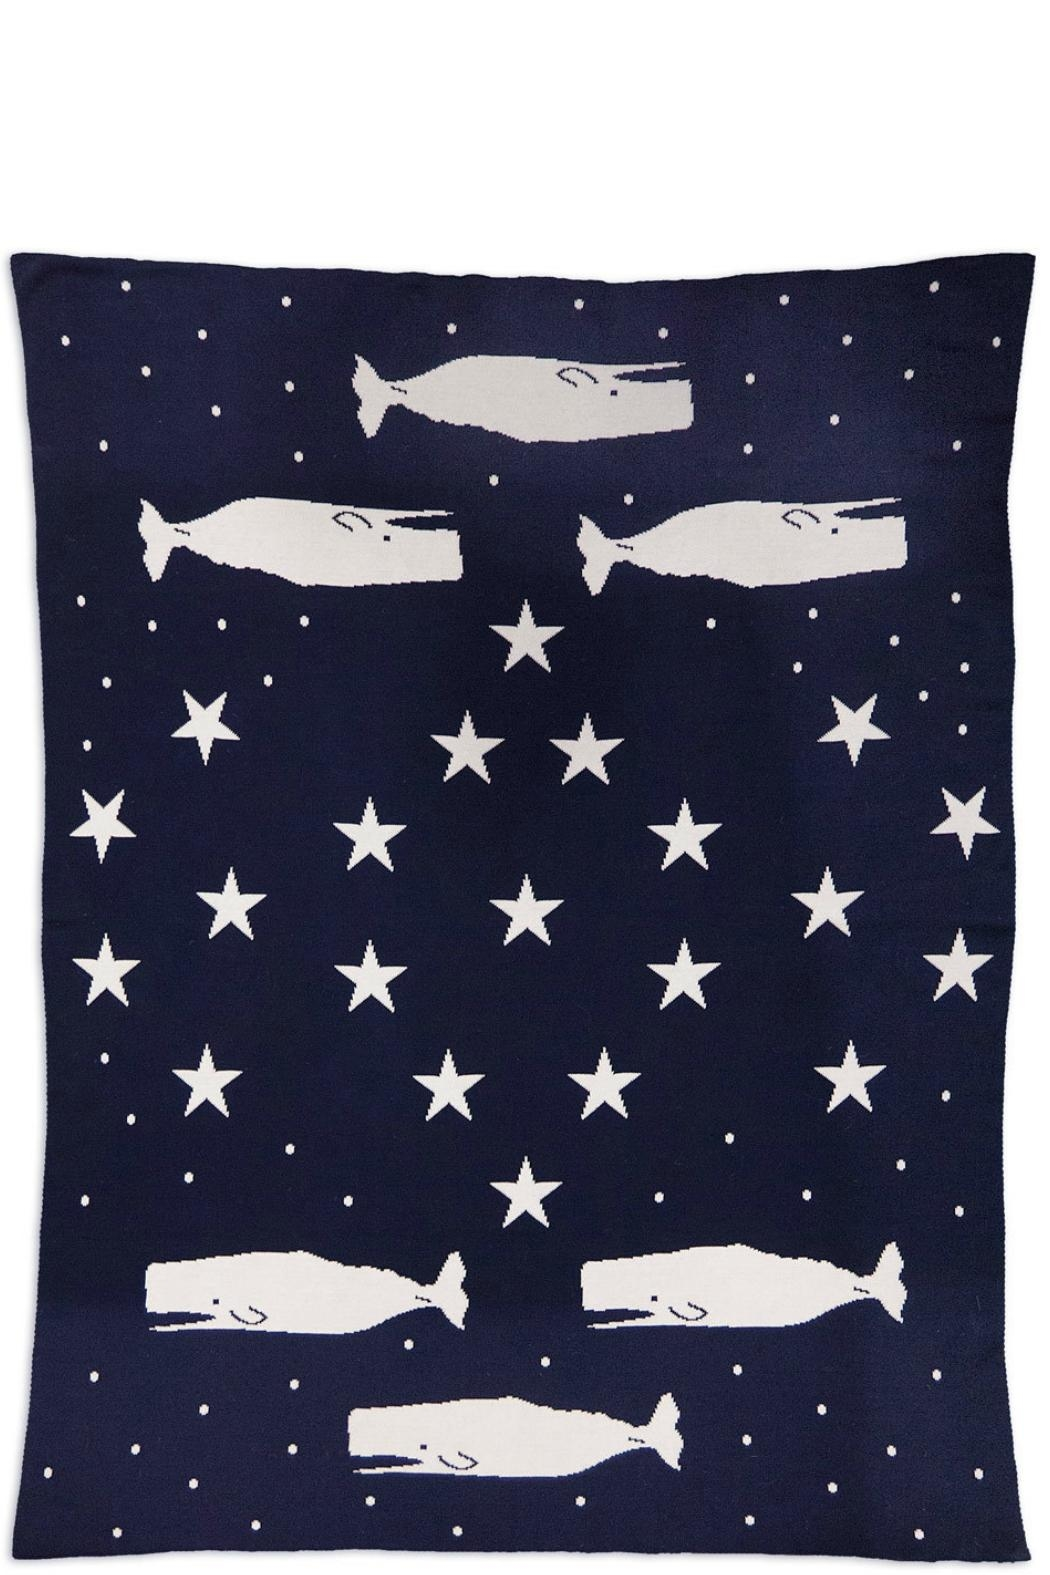 Chandler 4 Corners Whale Reversible Throw - Main Image